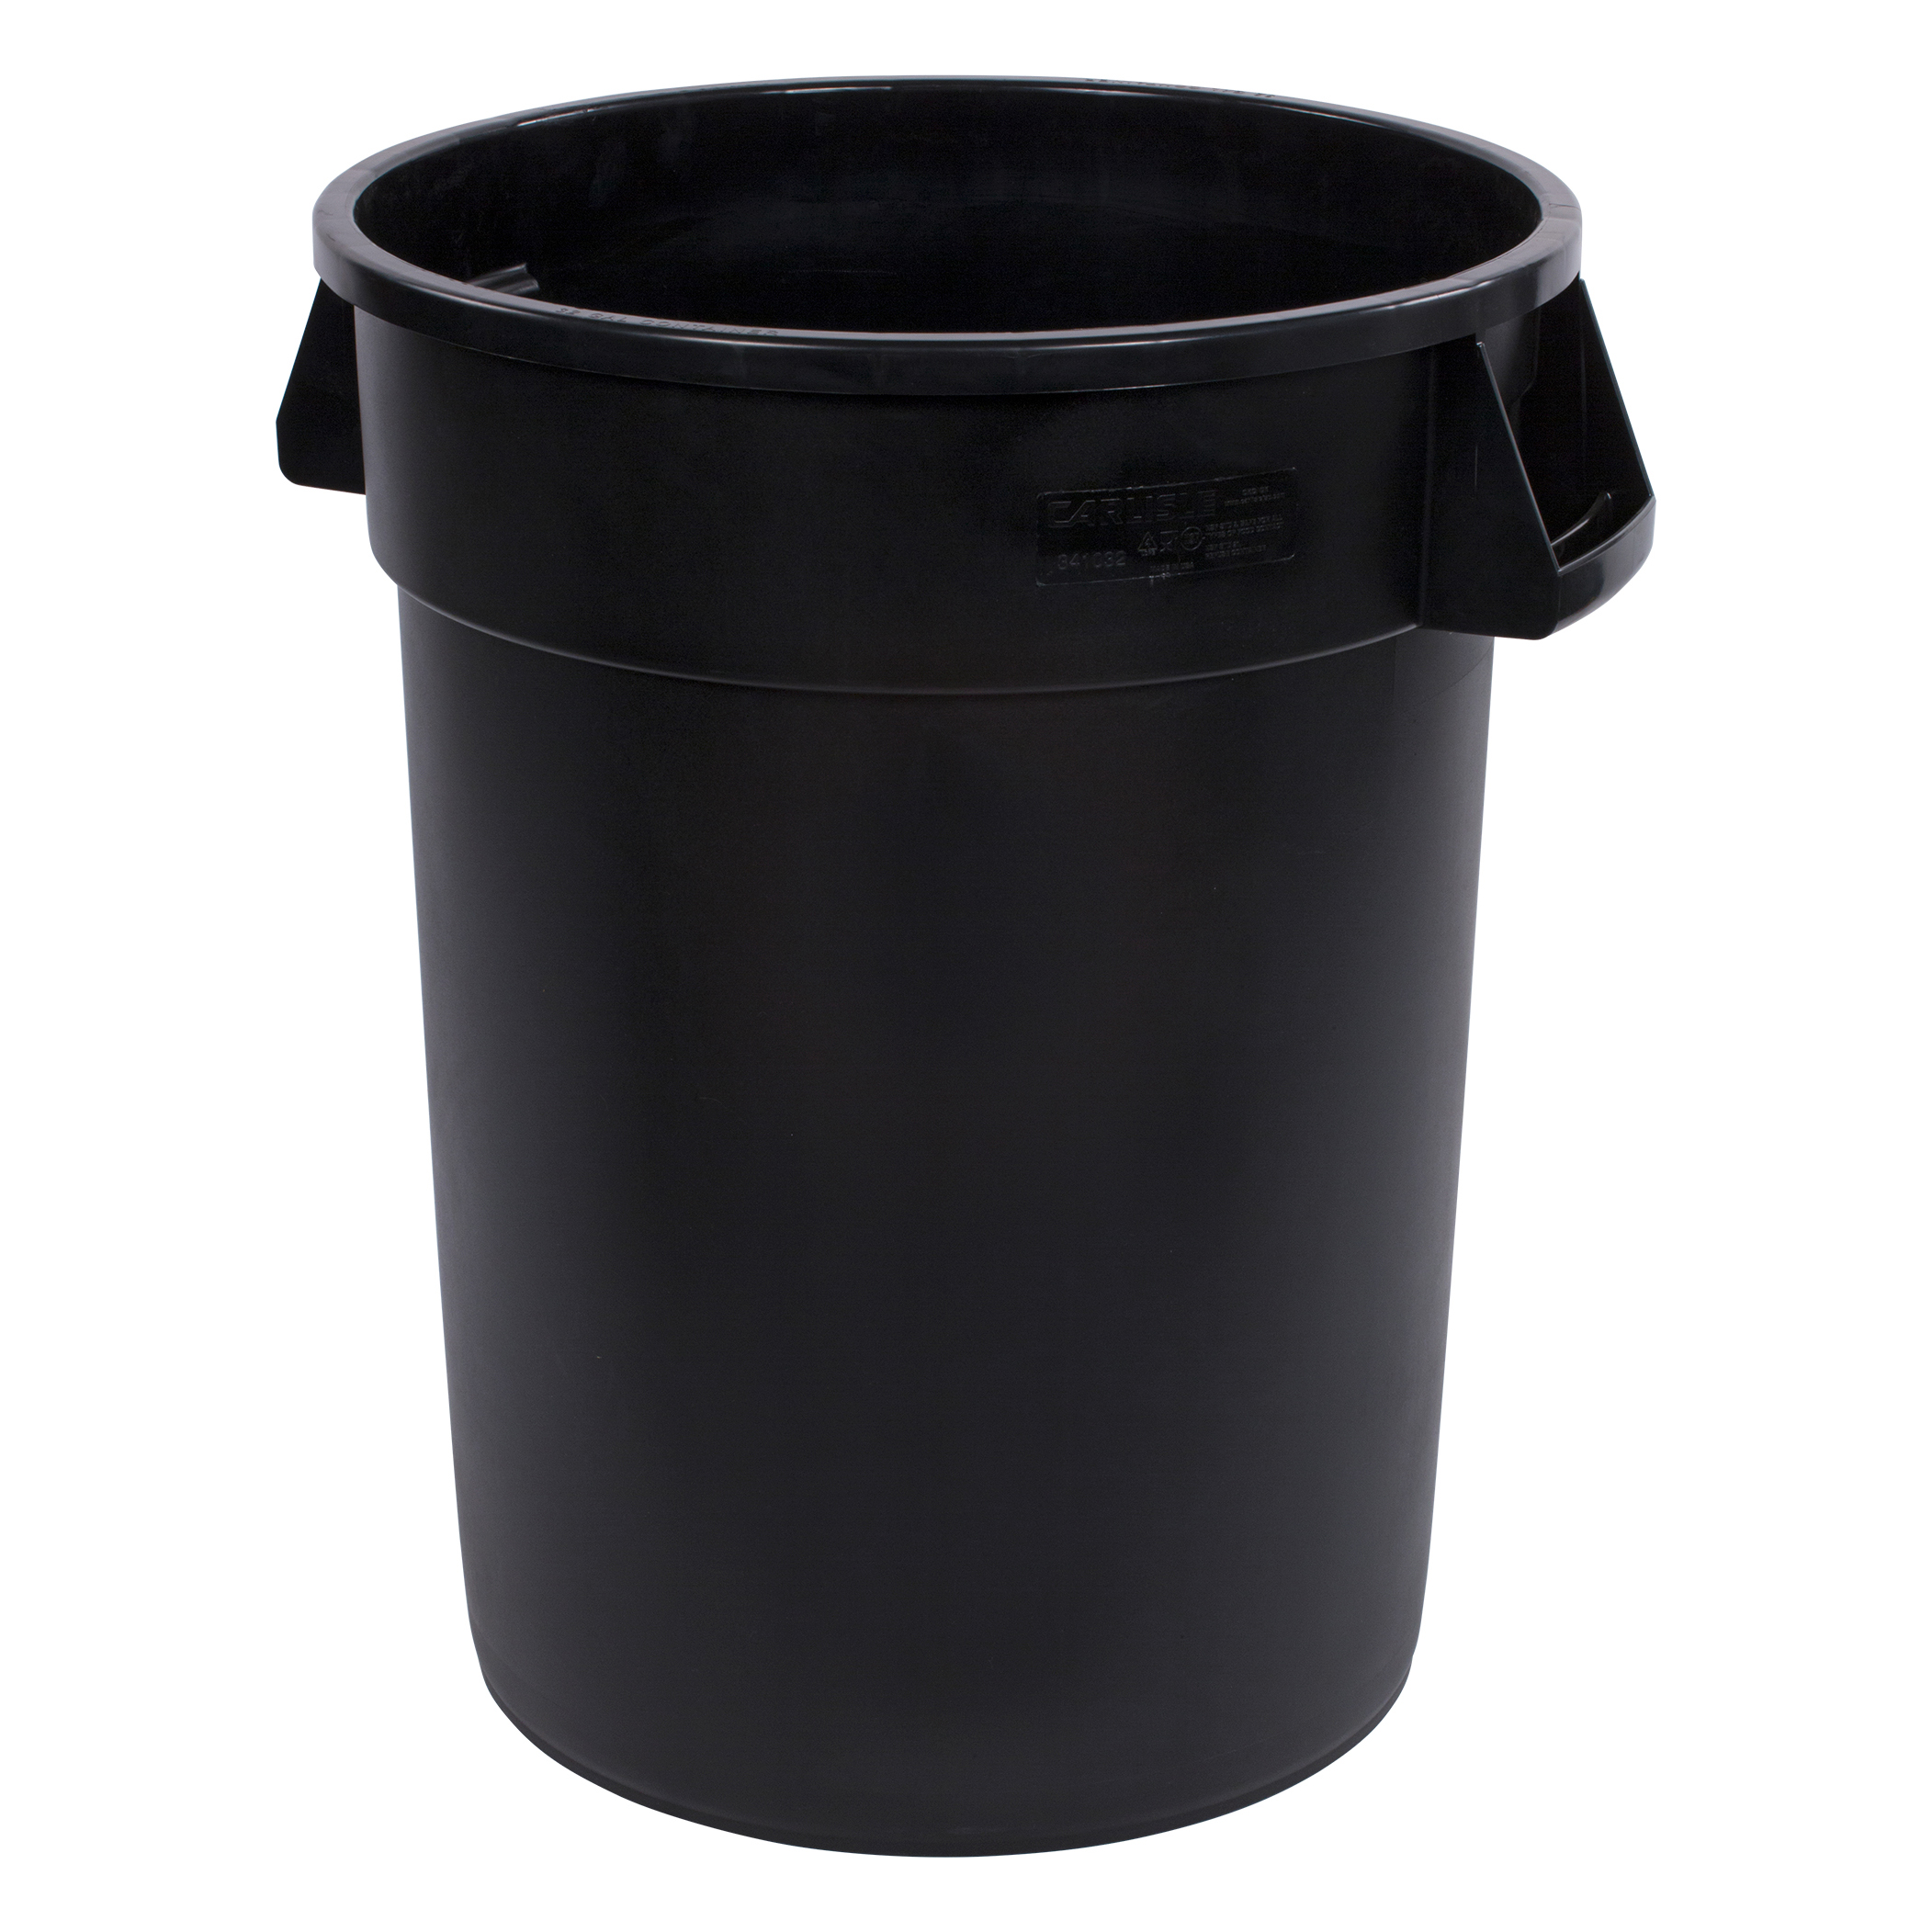 Carlisle 34103203 trash can / container, commercial